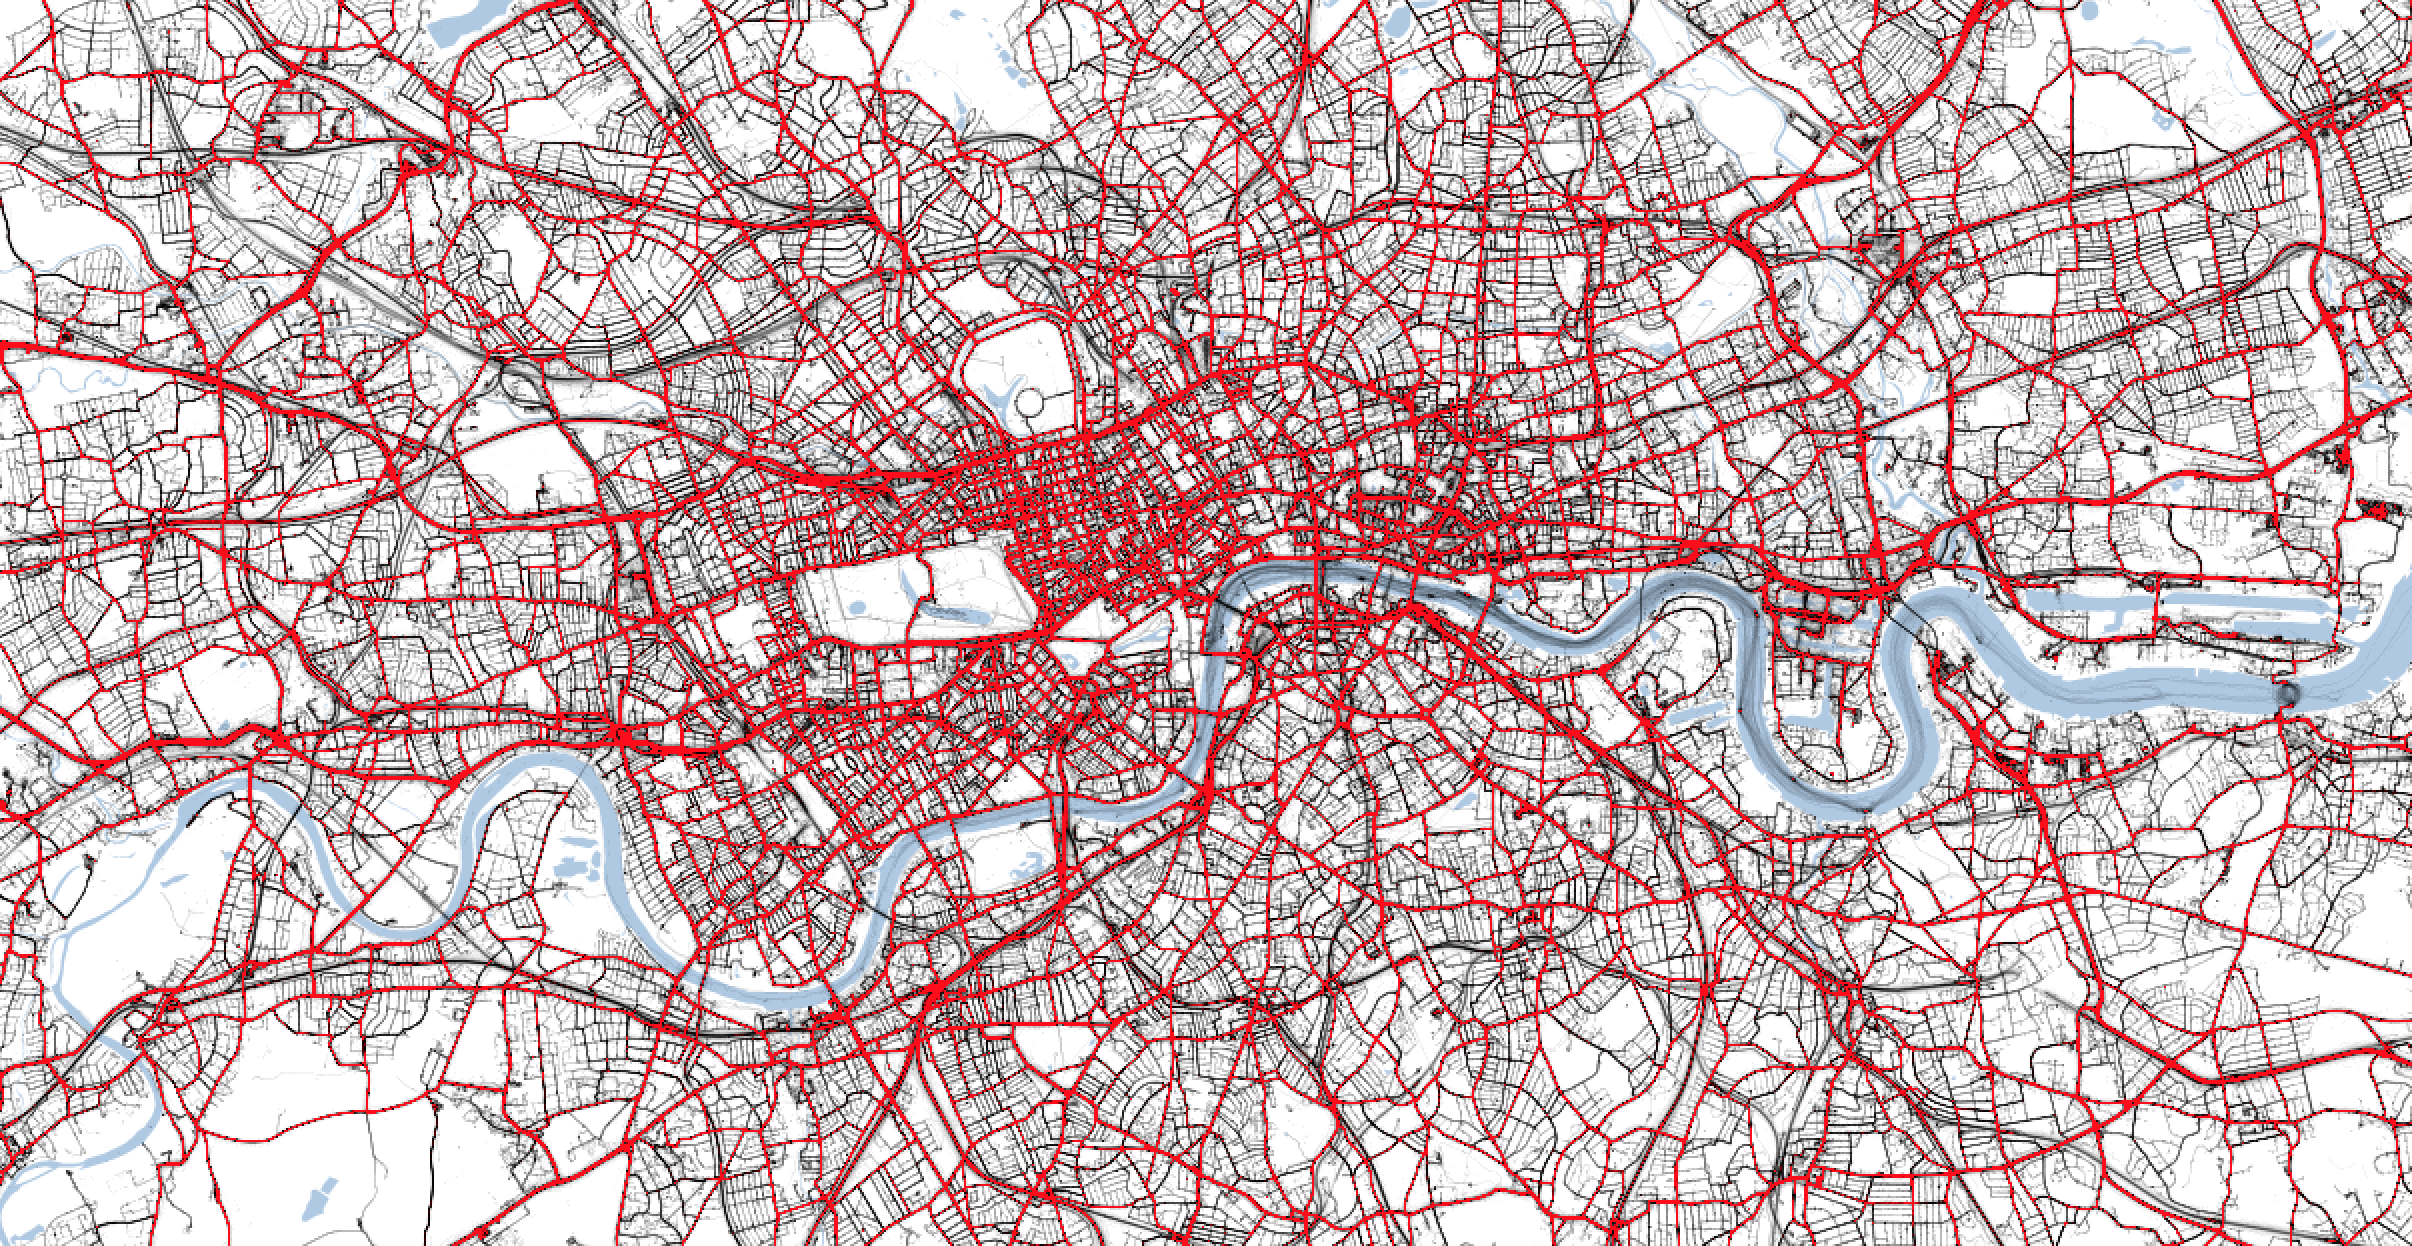 Traffic levels in London at 5pm on Maundy Thursday 2019. The red lines indicate heavy traffic. (TomTom/PA)